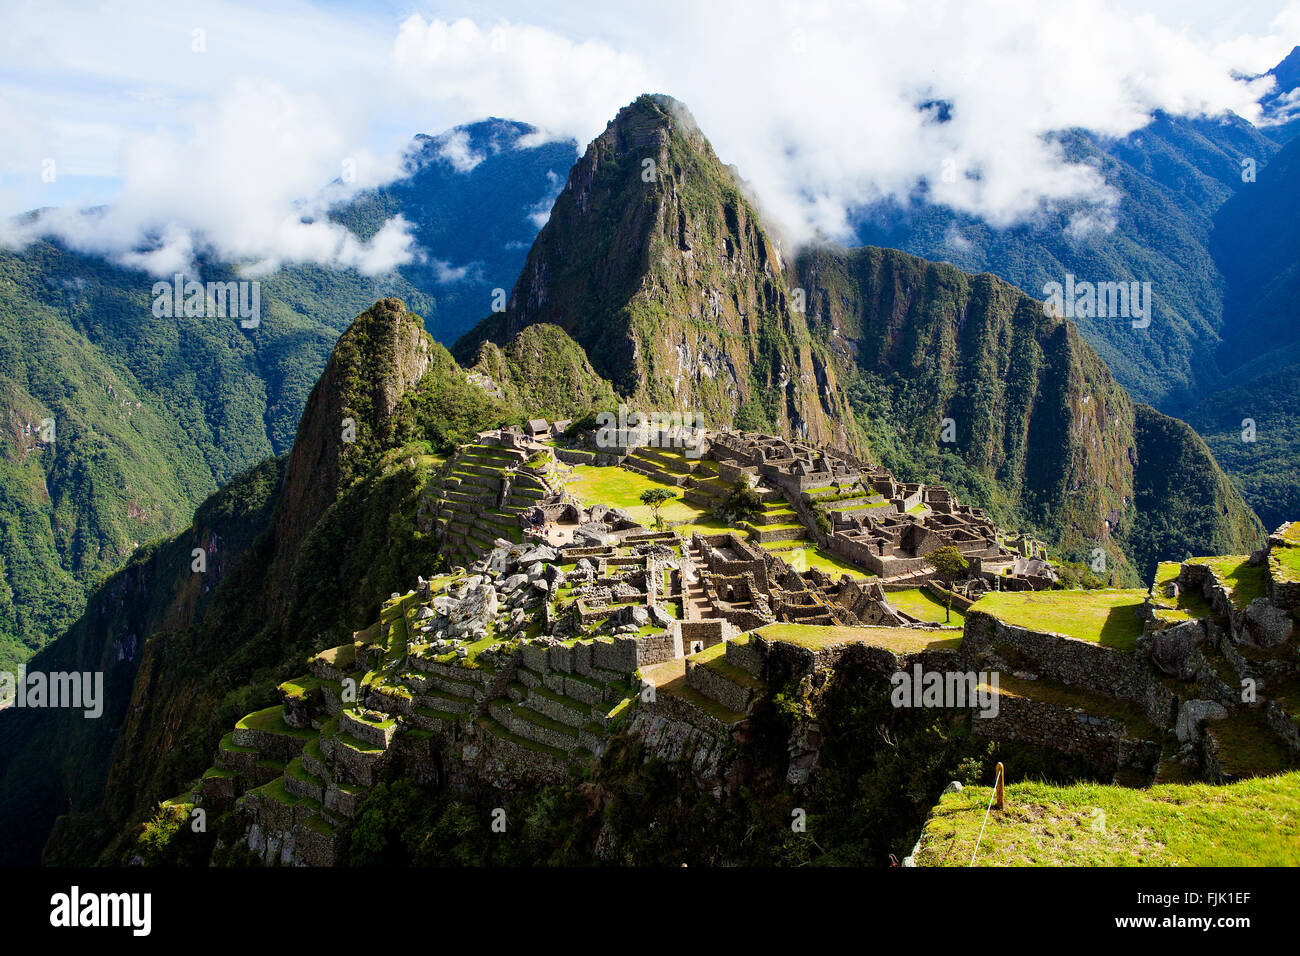 Misty clouds over Machu Picchu Wolrd Heritage Site - Stock Image